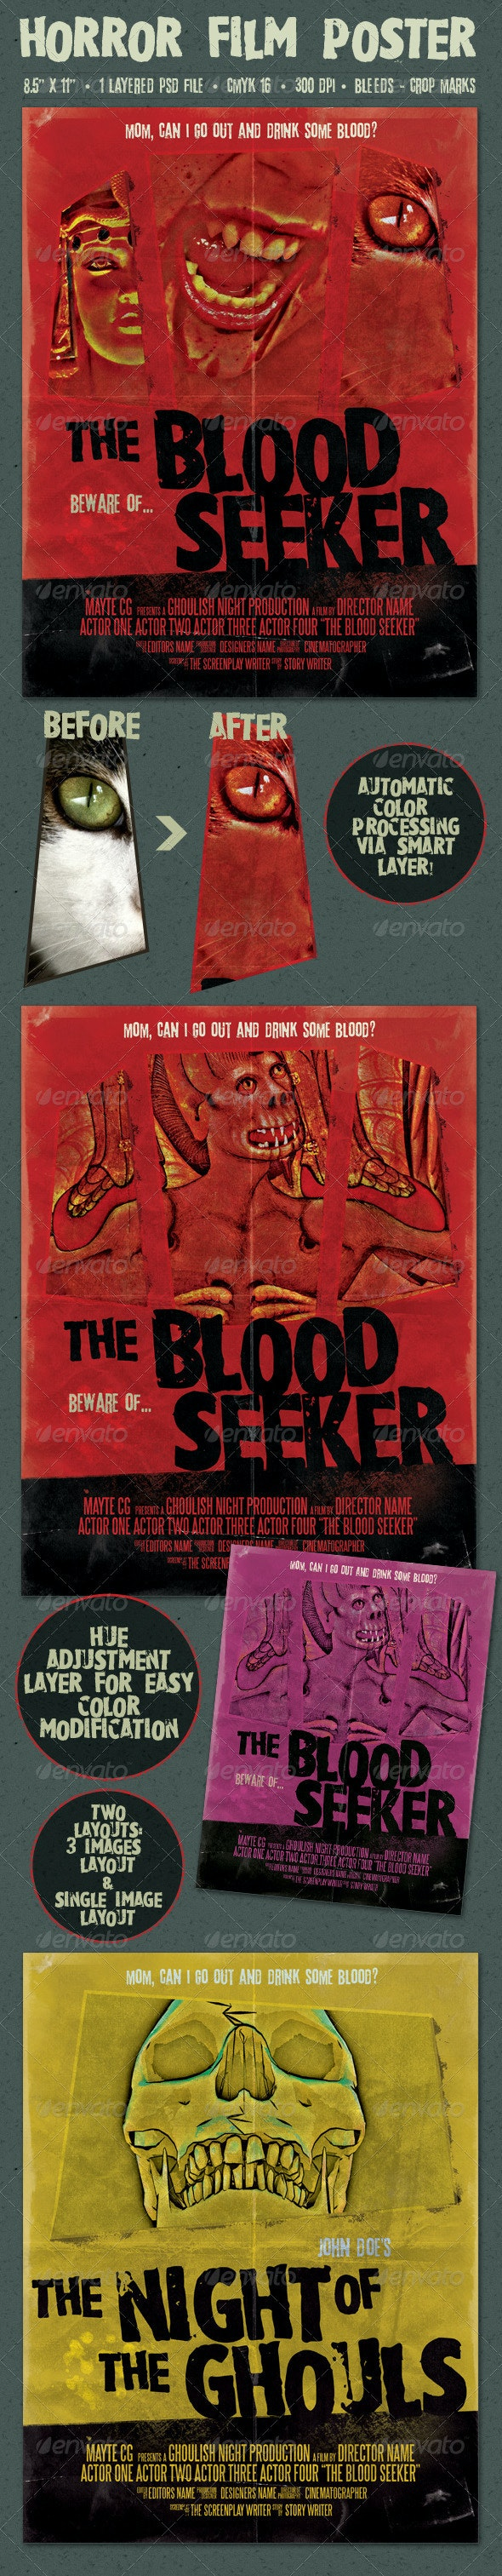 The Blood Seeker Vintage Style Horror Film Poster - Miscellaneous Events